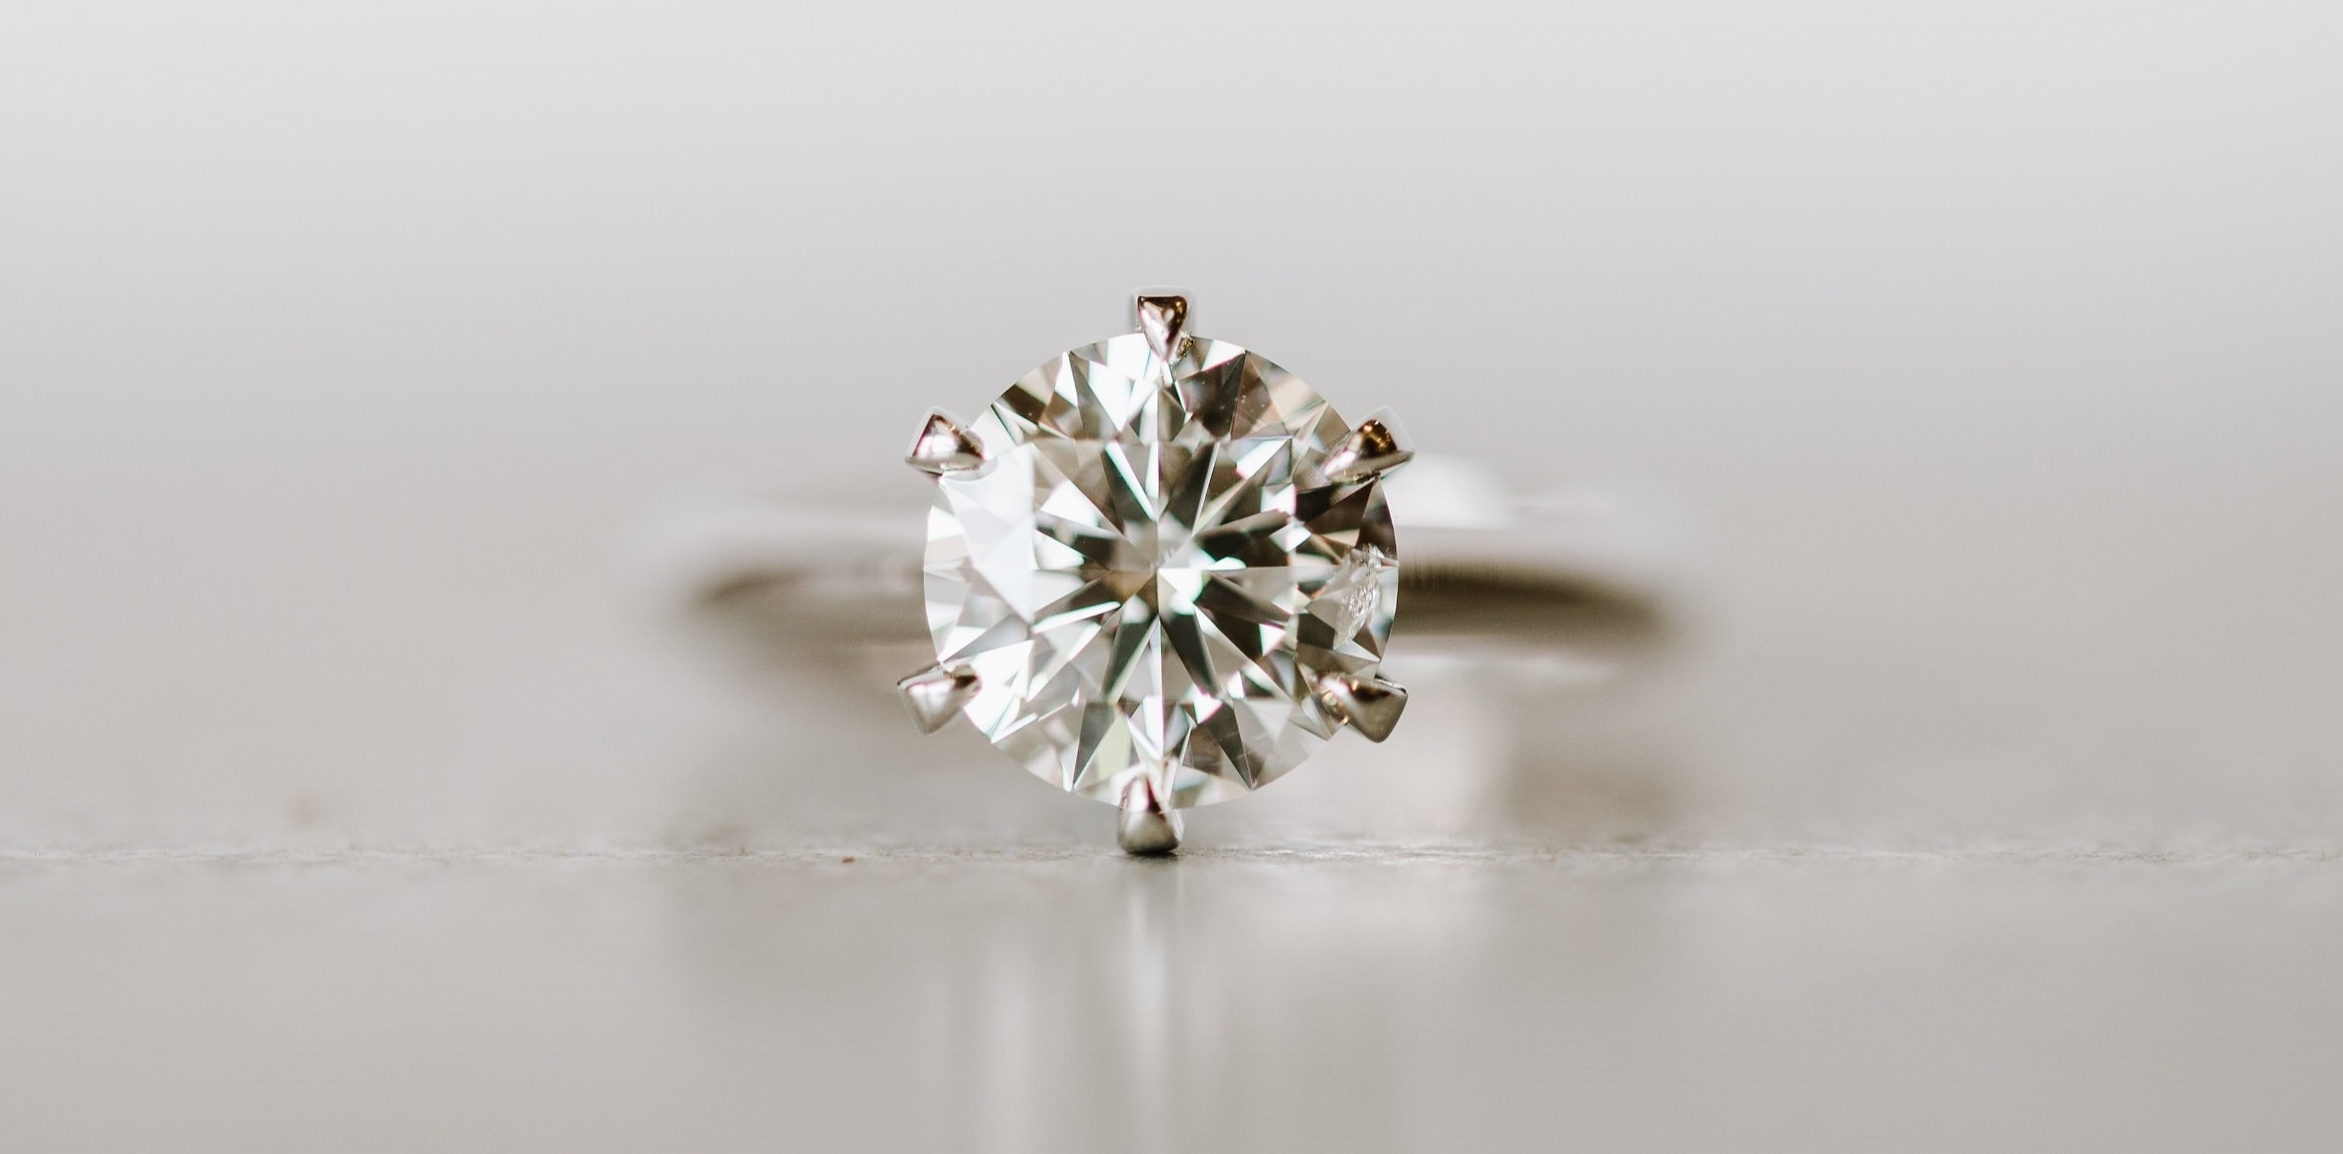 How Much Does A Two Carat Ring Cost?